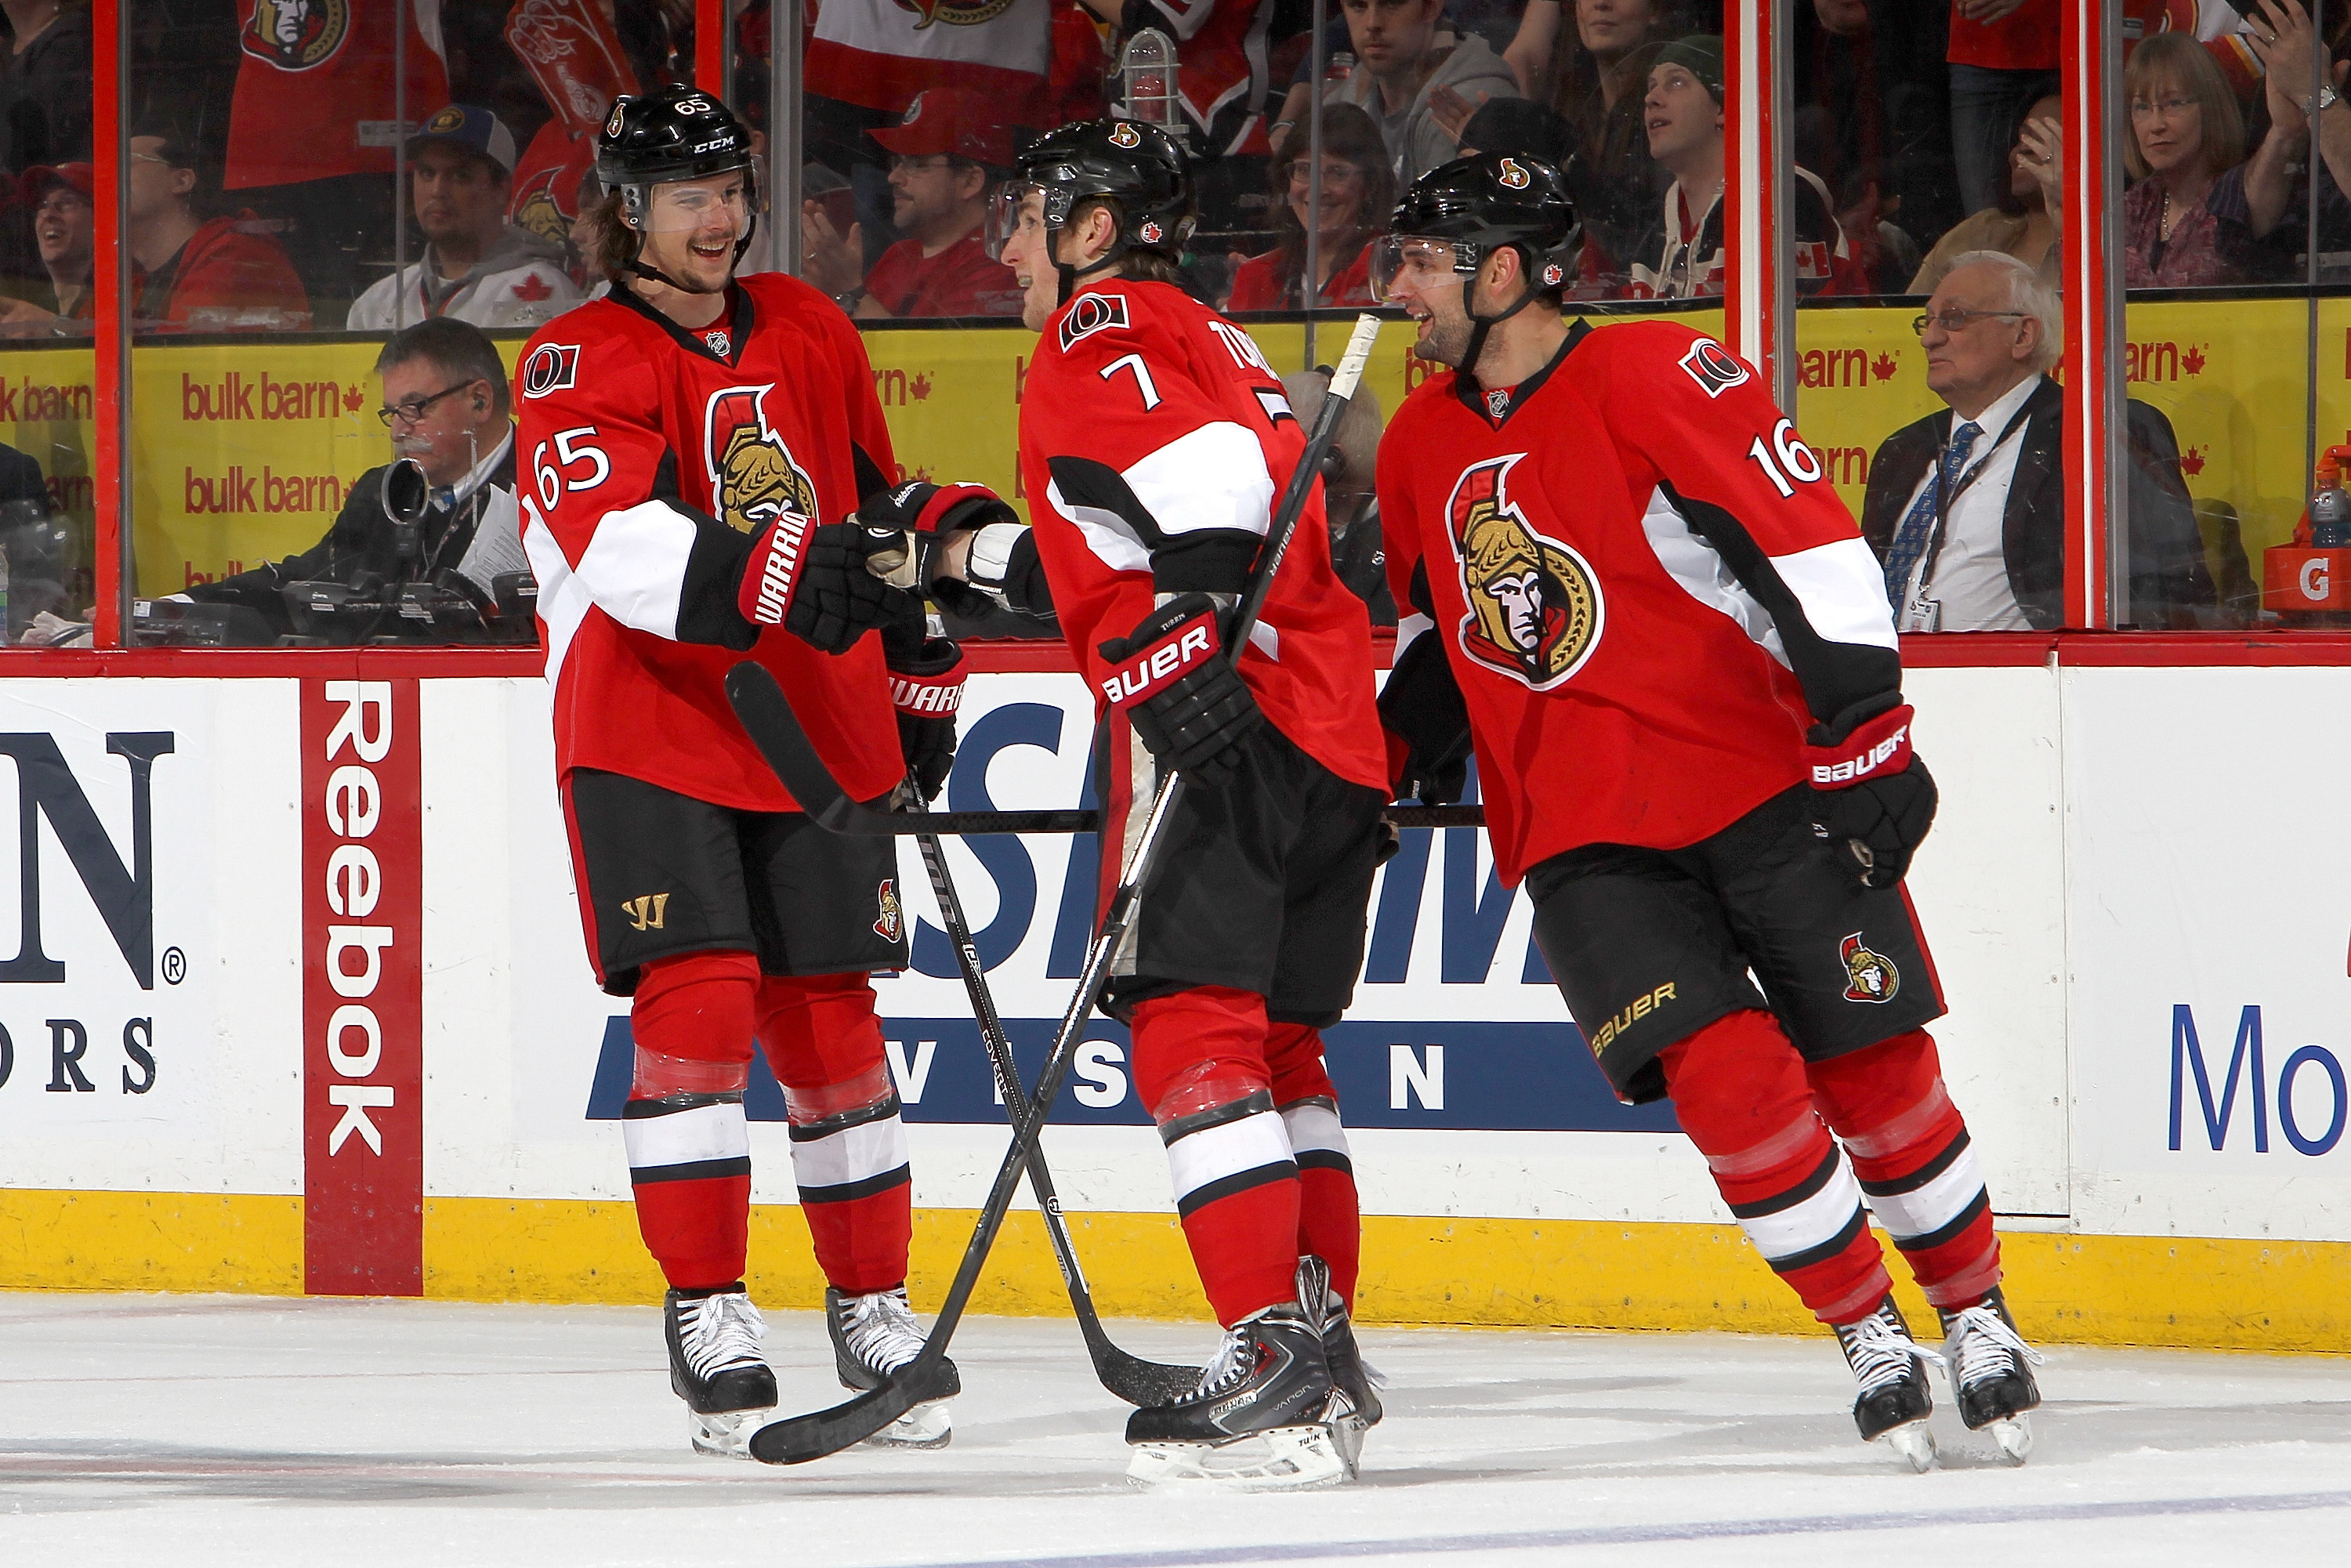 Pictured from left to right: everything that is good in the Sens universe.